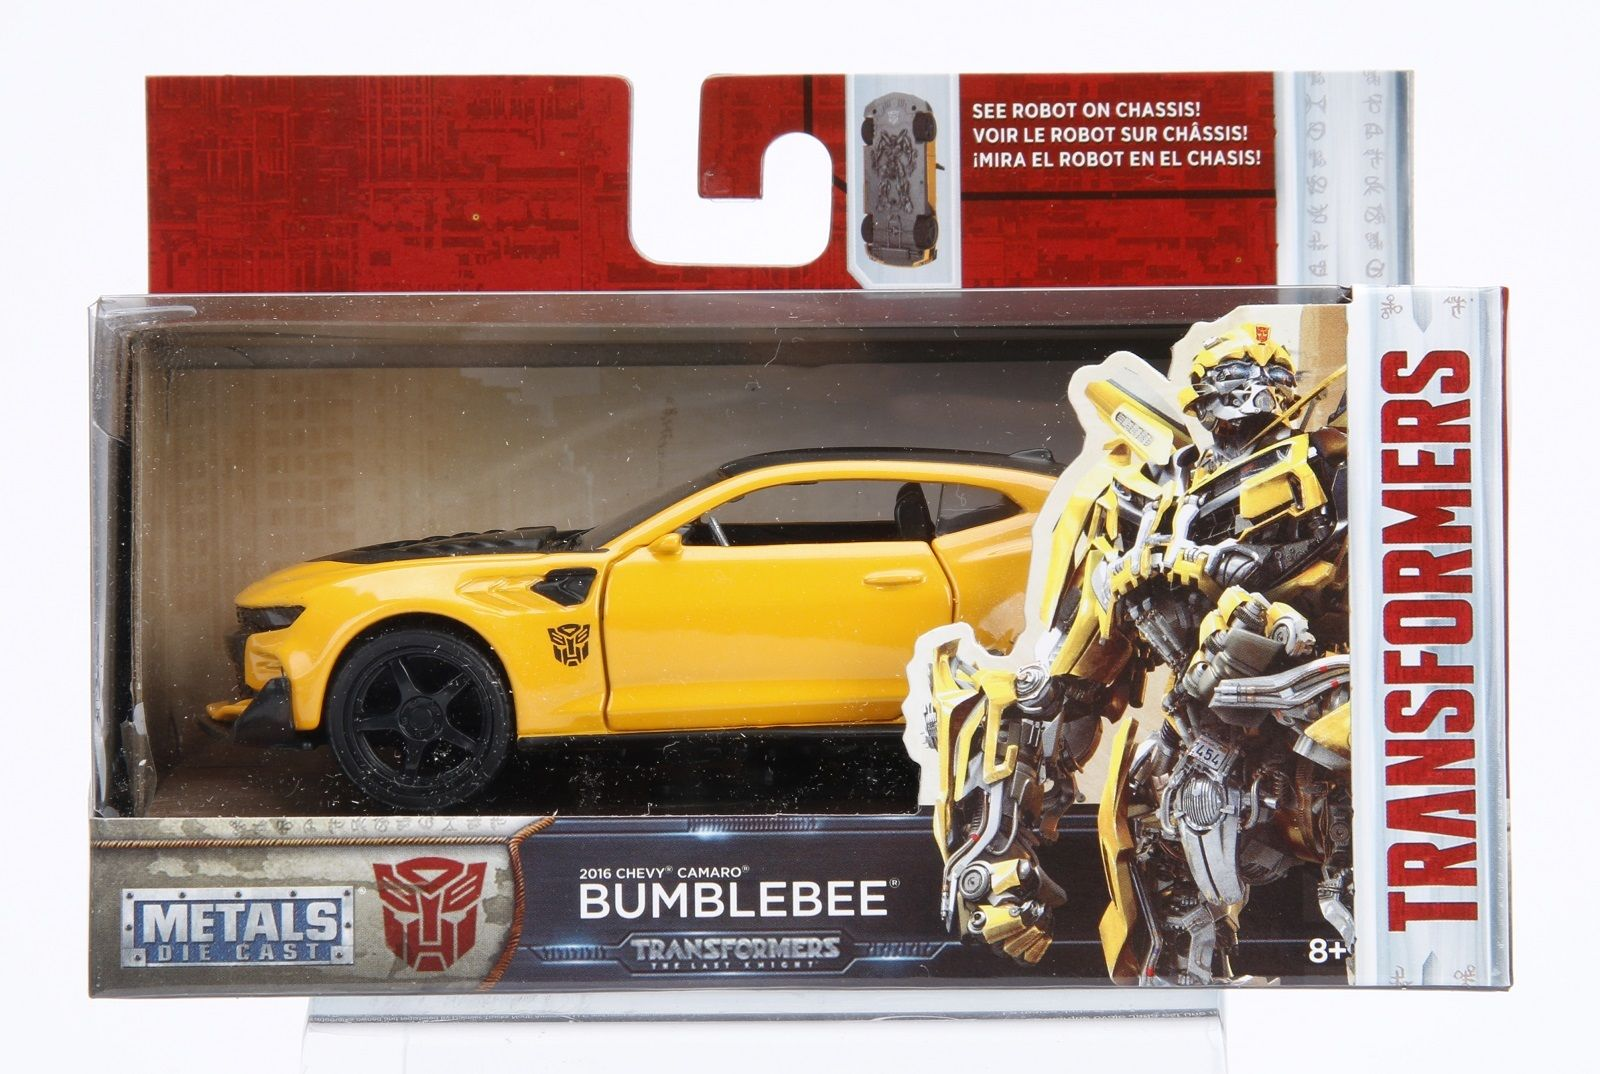 World Famous Classic Toys Diecast New Arrivals Just Released 1951 1953 Chevrolet Pickup Jada Transformers Bumble Bee